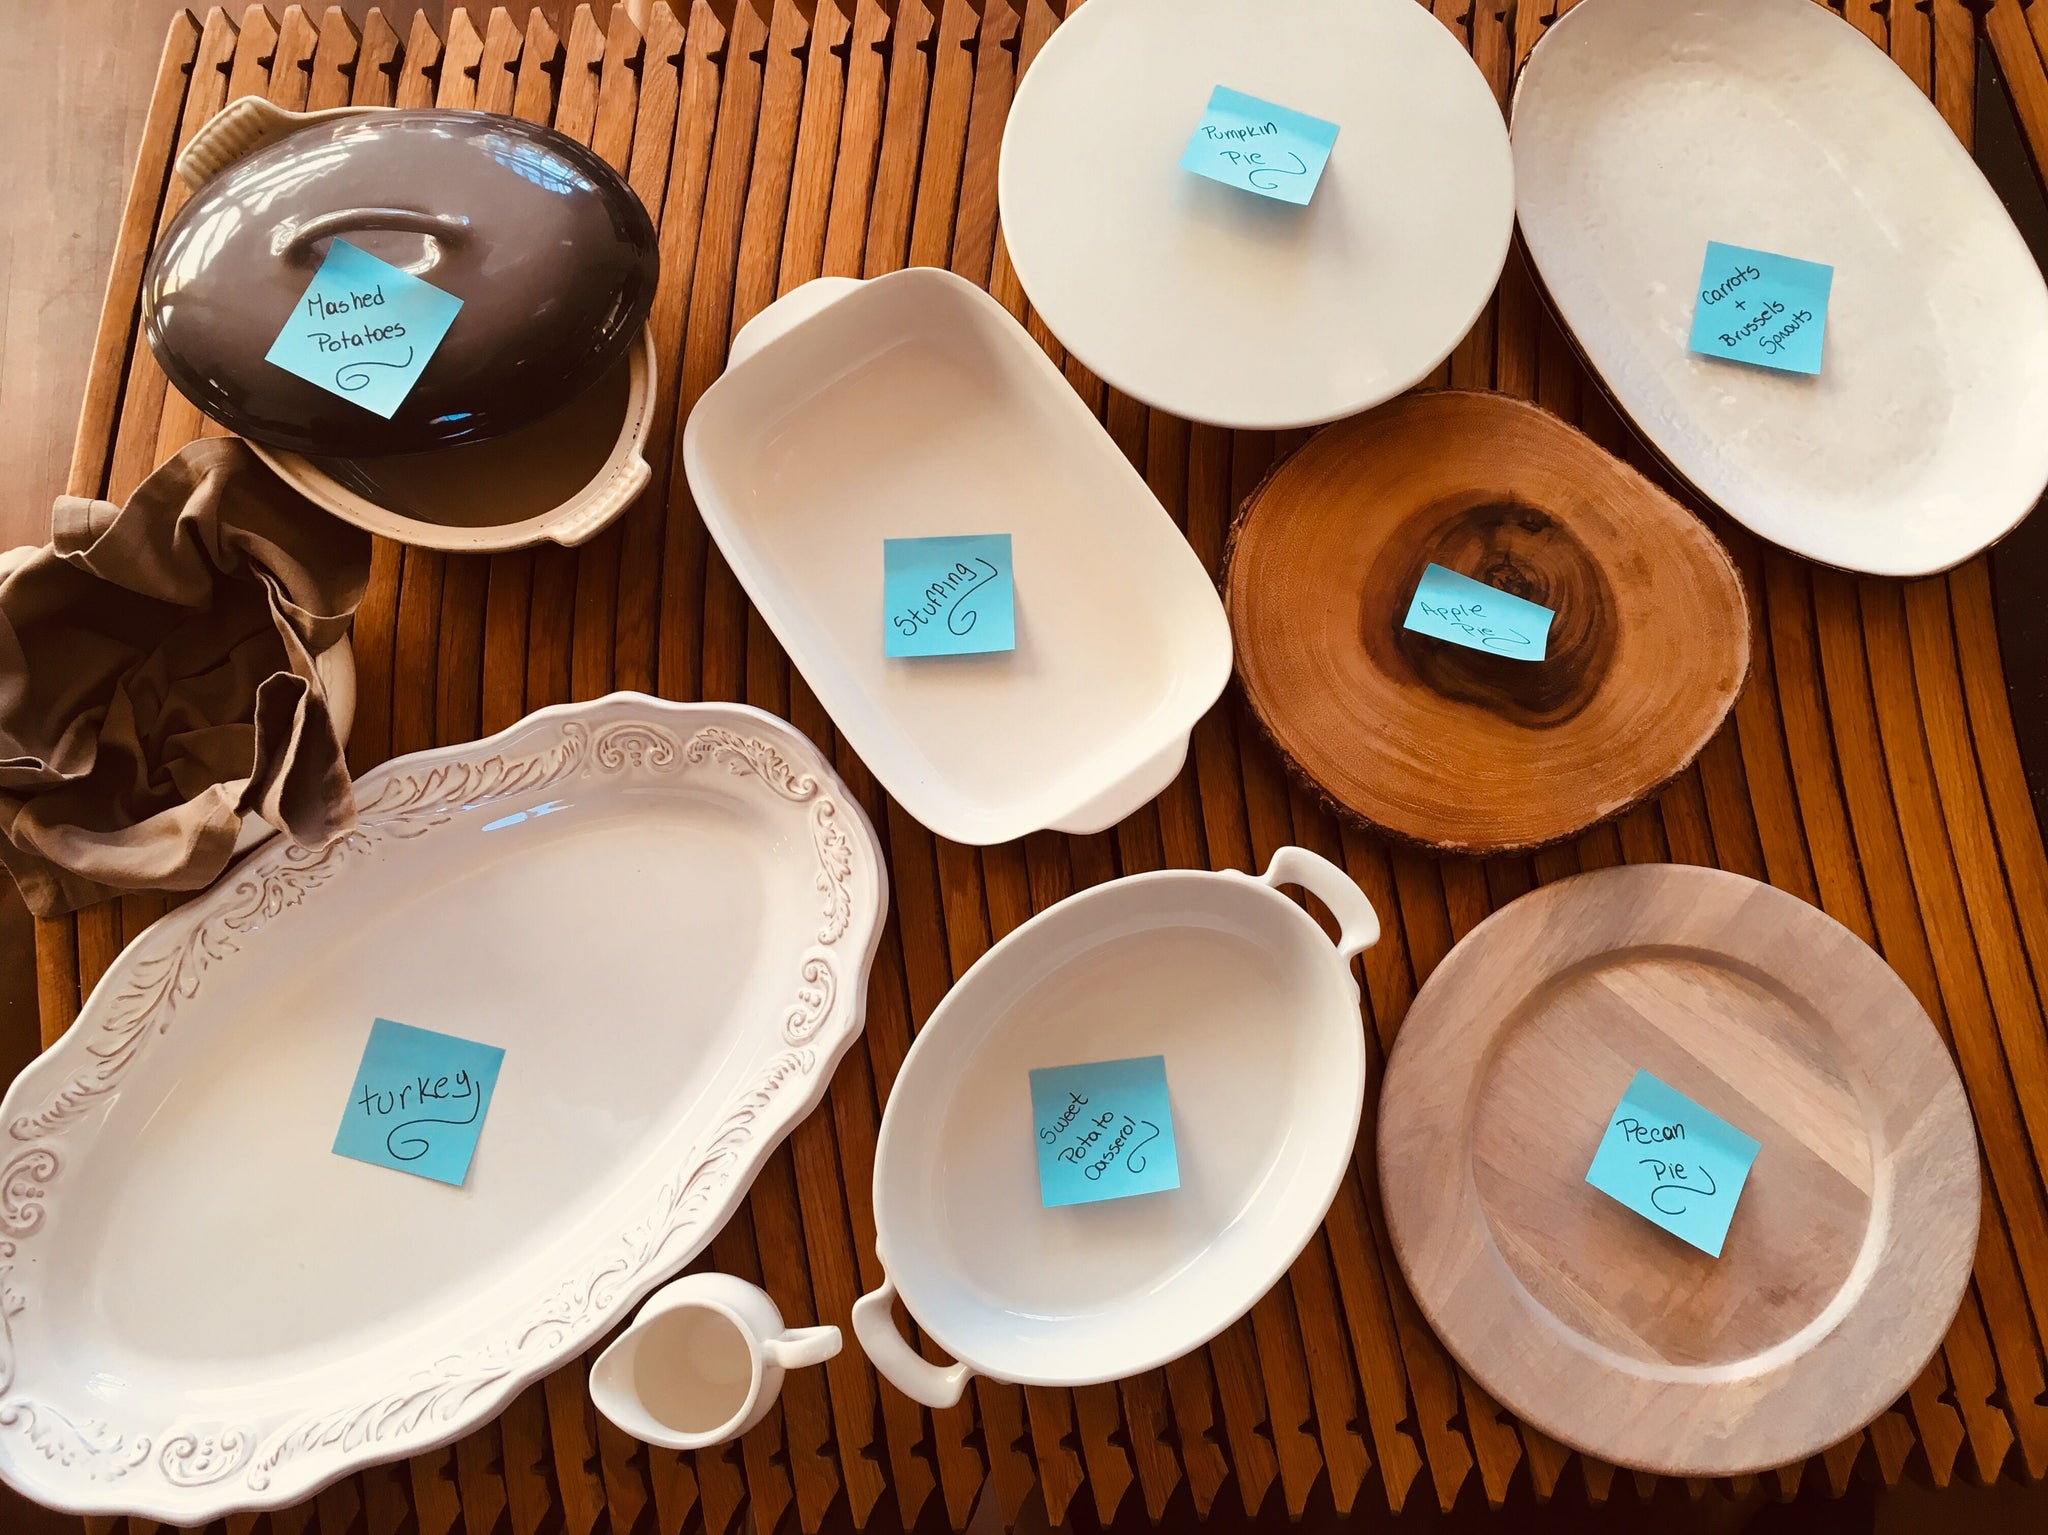 plates with notes